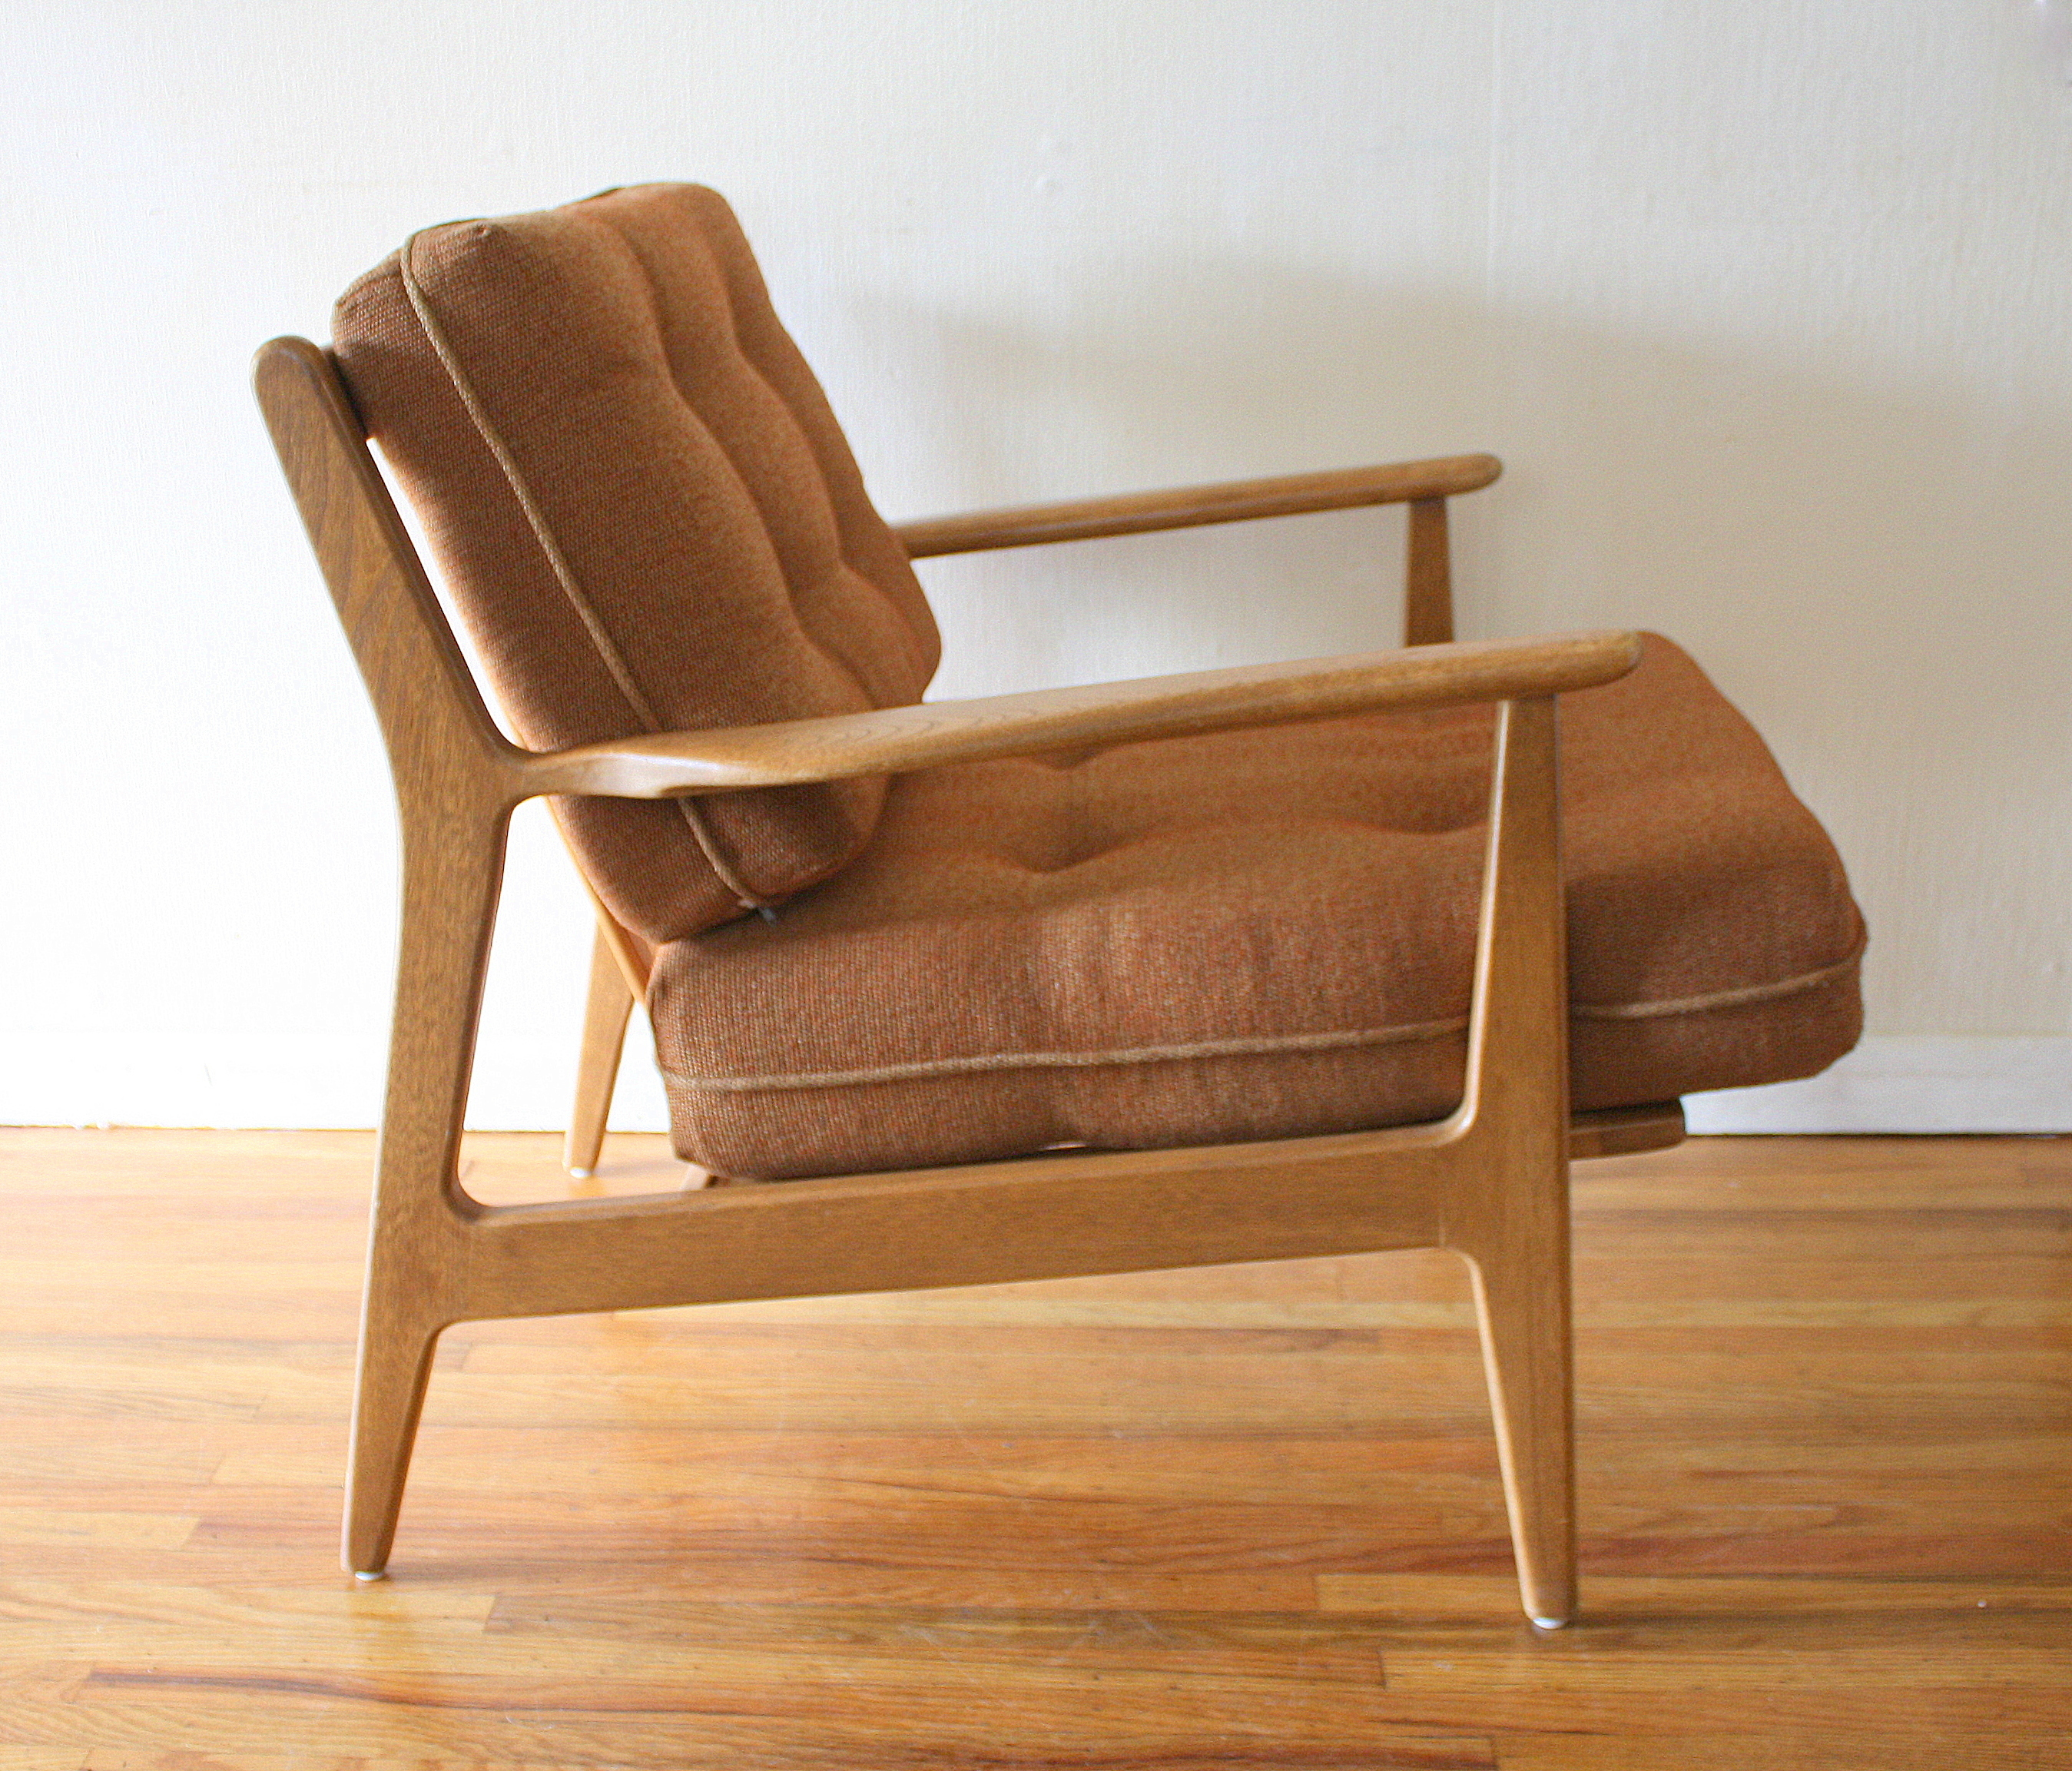 Modern wood chair with arms - Mid Century Modern Baumritter Chairs 2